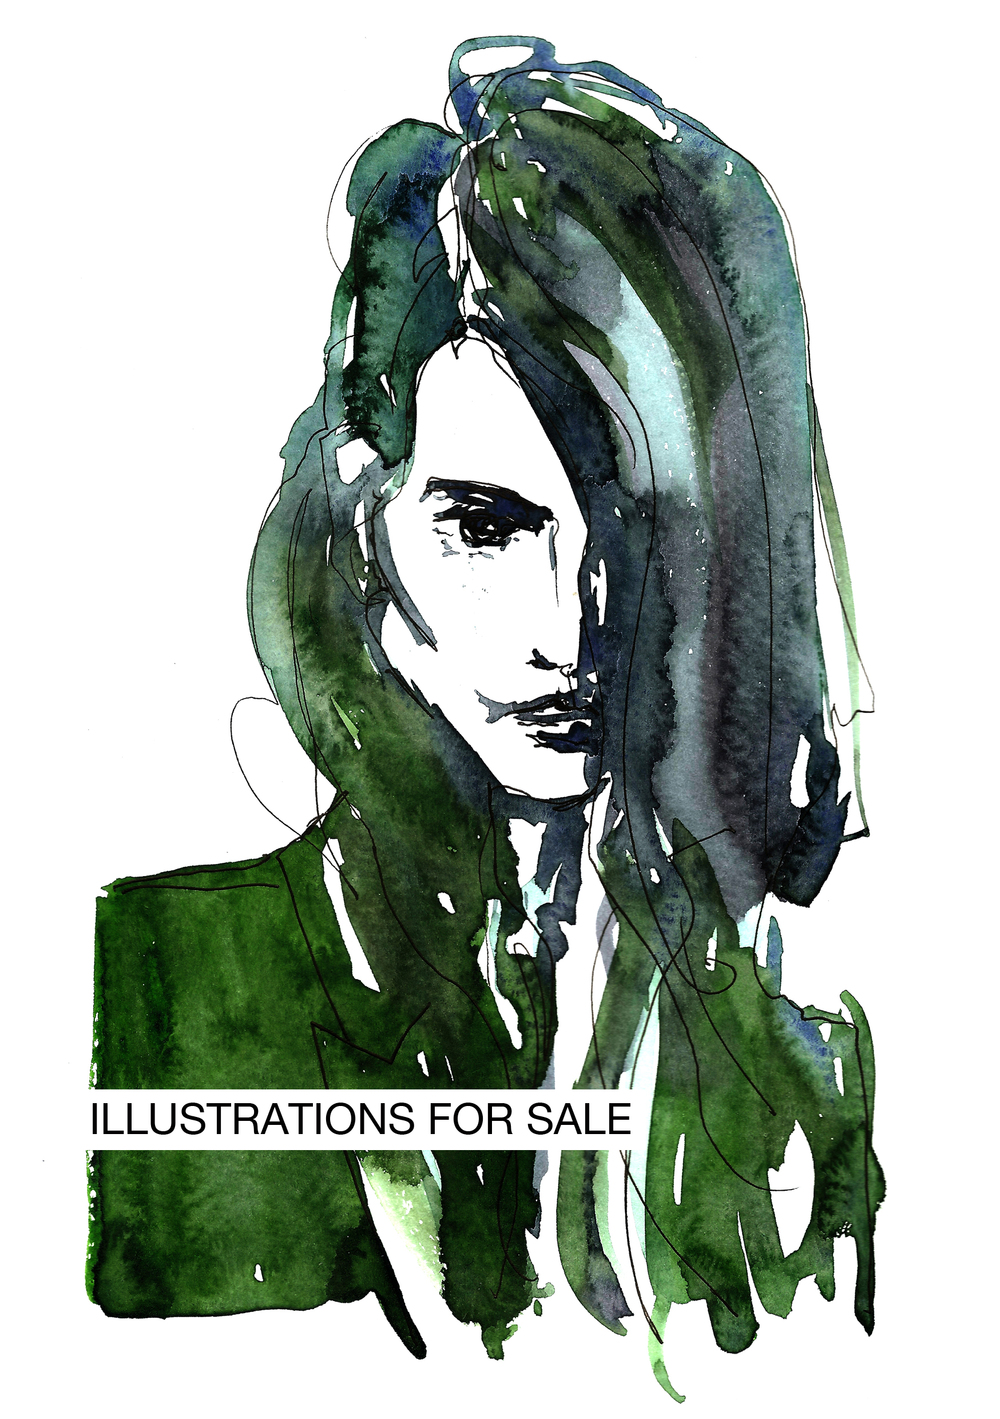 ILLUSTRATIONS-FOR-SALE-PRINT-ISABELLA-HEMMERSBACH-STUDIO.JPEG